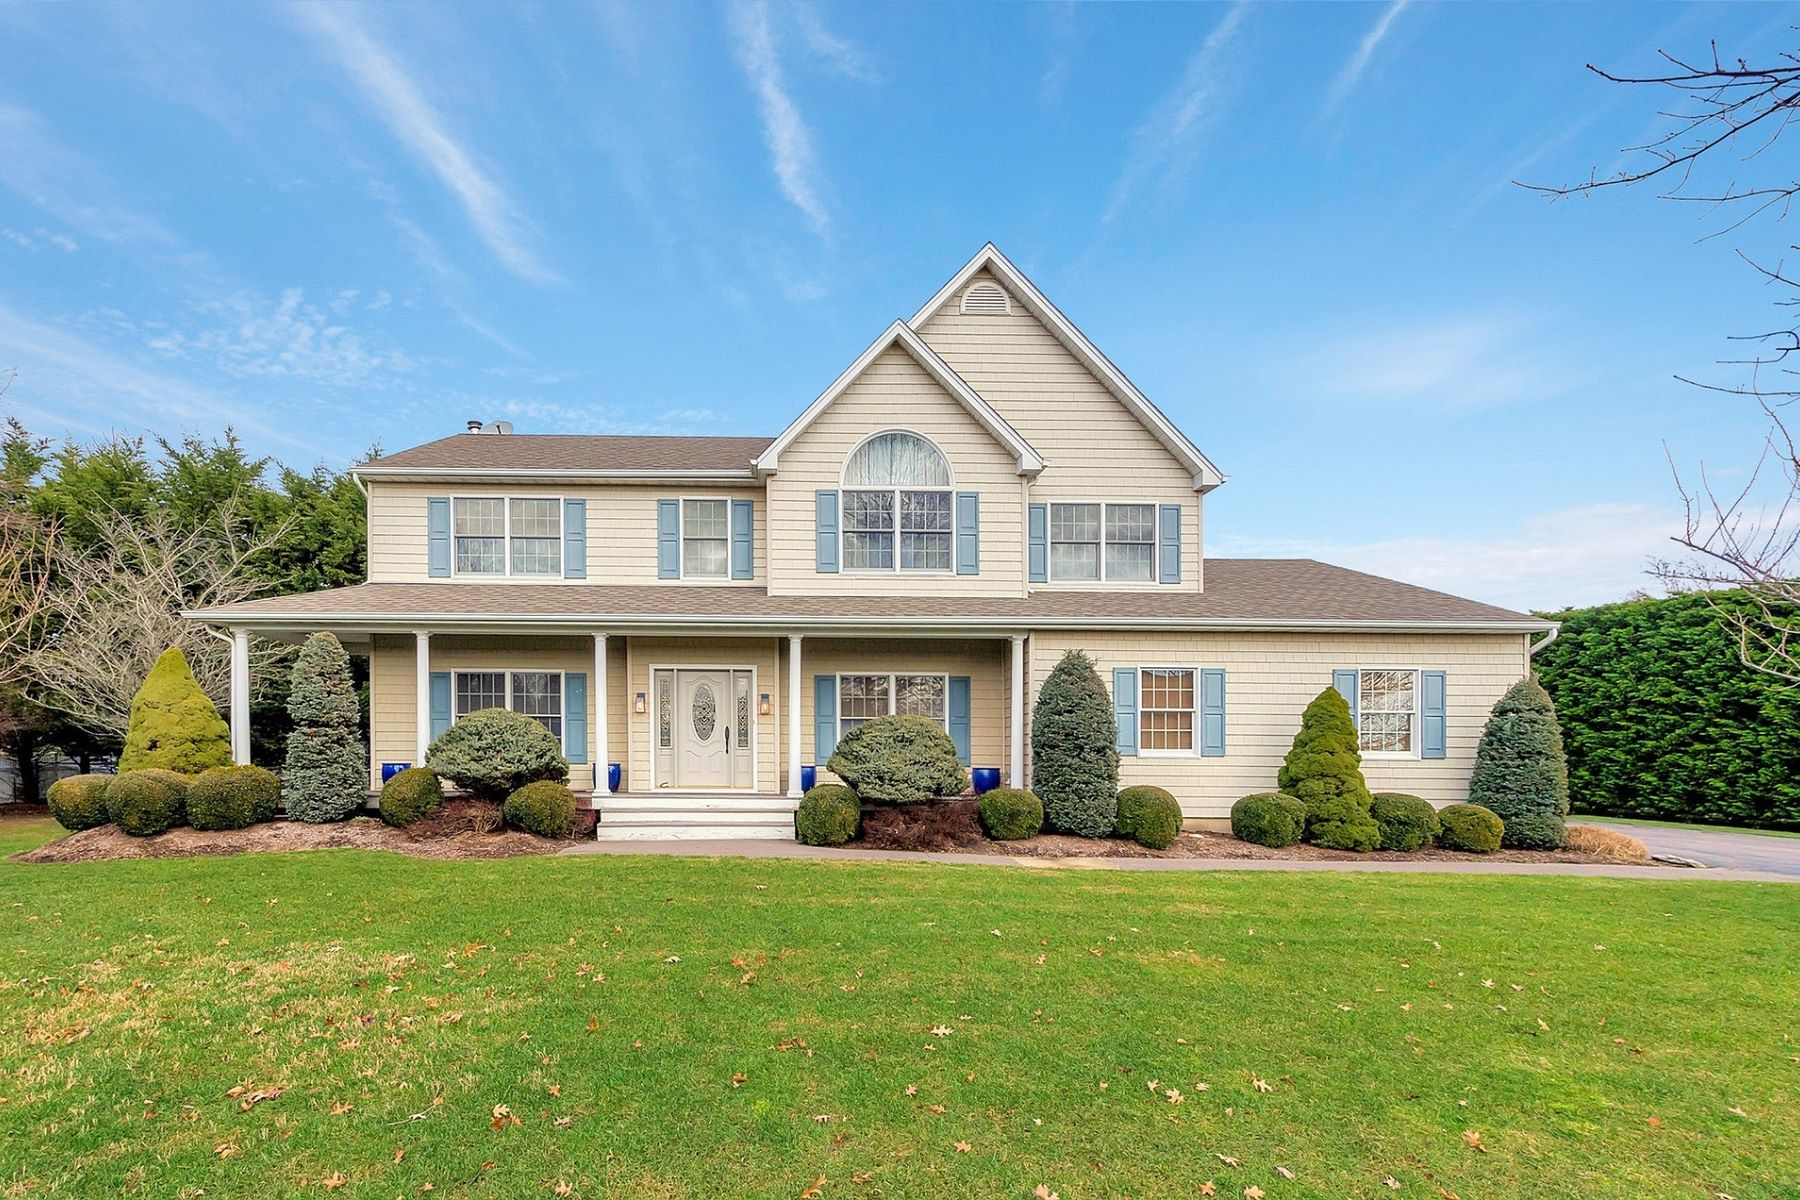 Single Family Home for Active at 805 Water Terrace, Southold, NY 11971 805 Water Terrace Terr Southold, New York 11971 United States